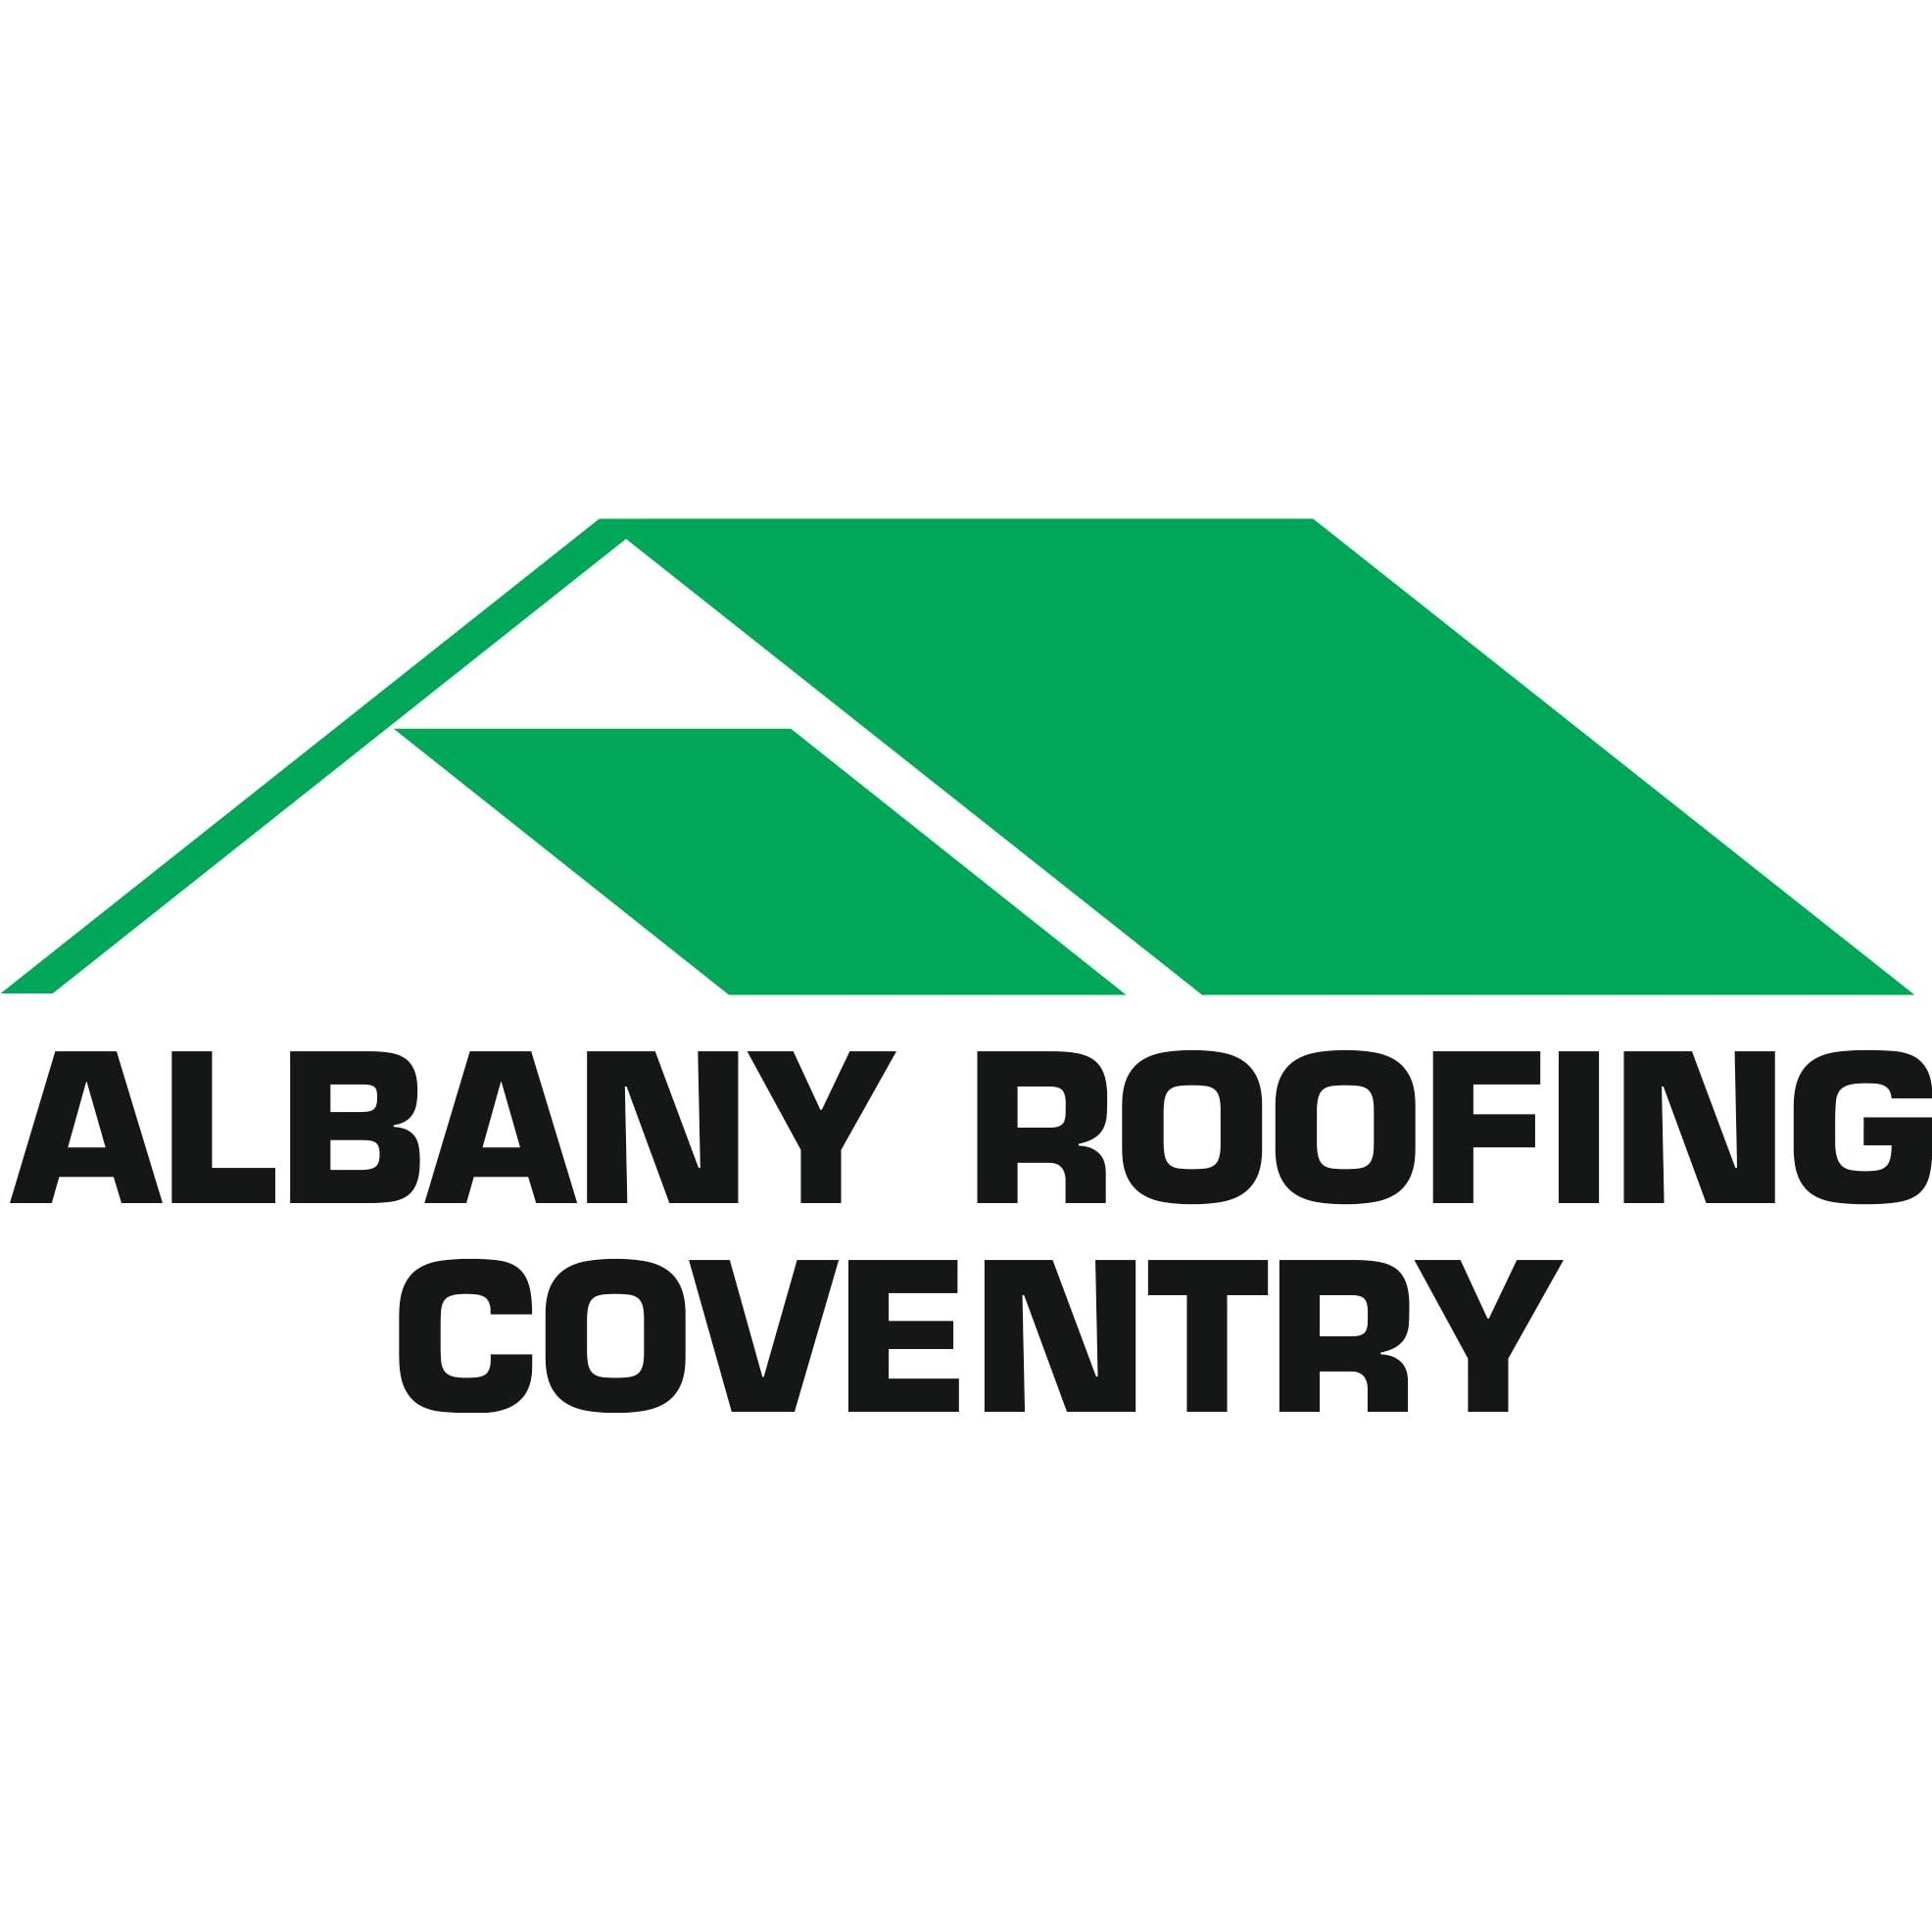 Albany Roofing Coventry - Coventry, West Midlands CV5 8JU - 07837 549346 | ShowMeLocal.com